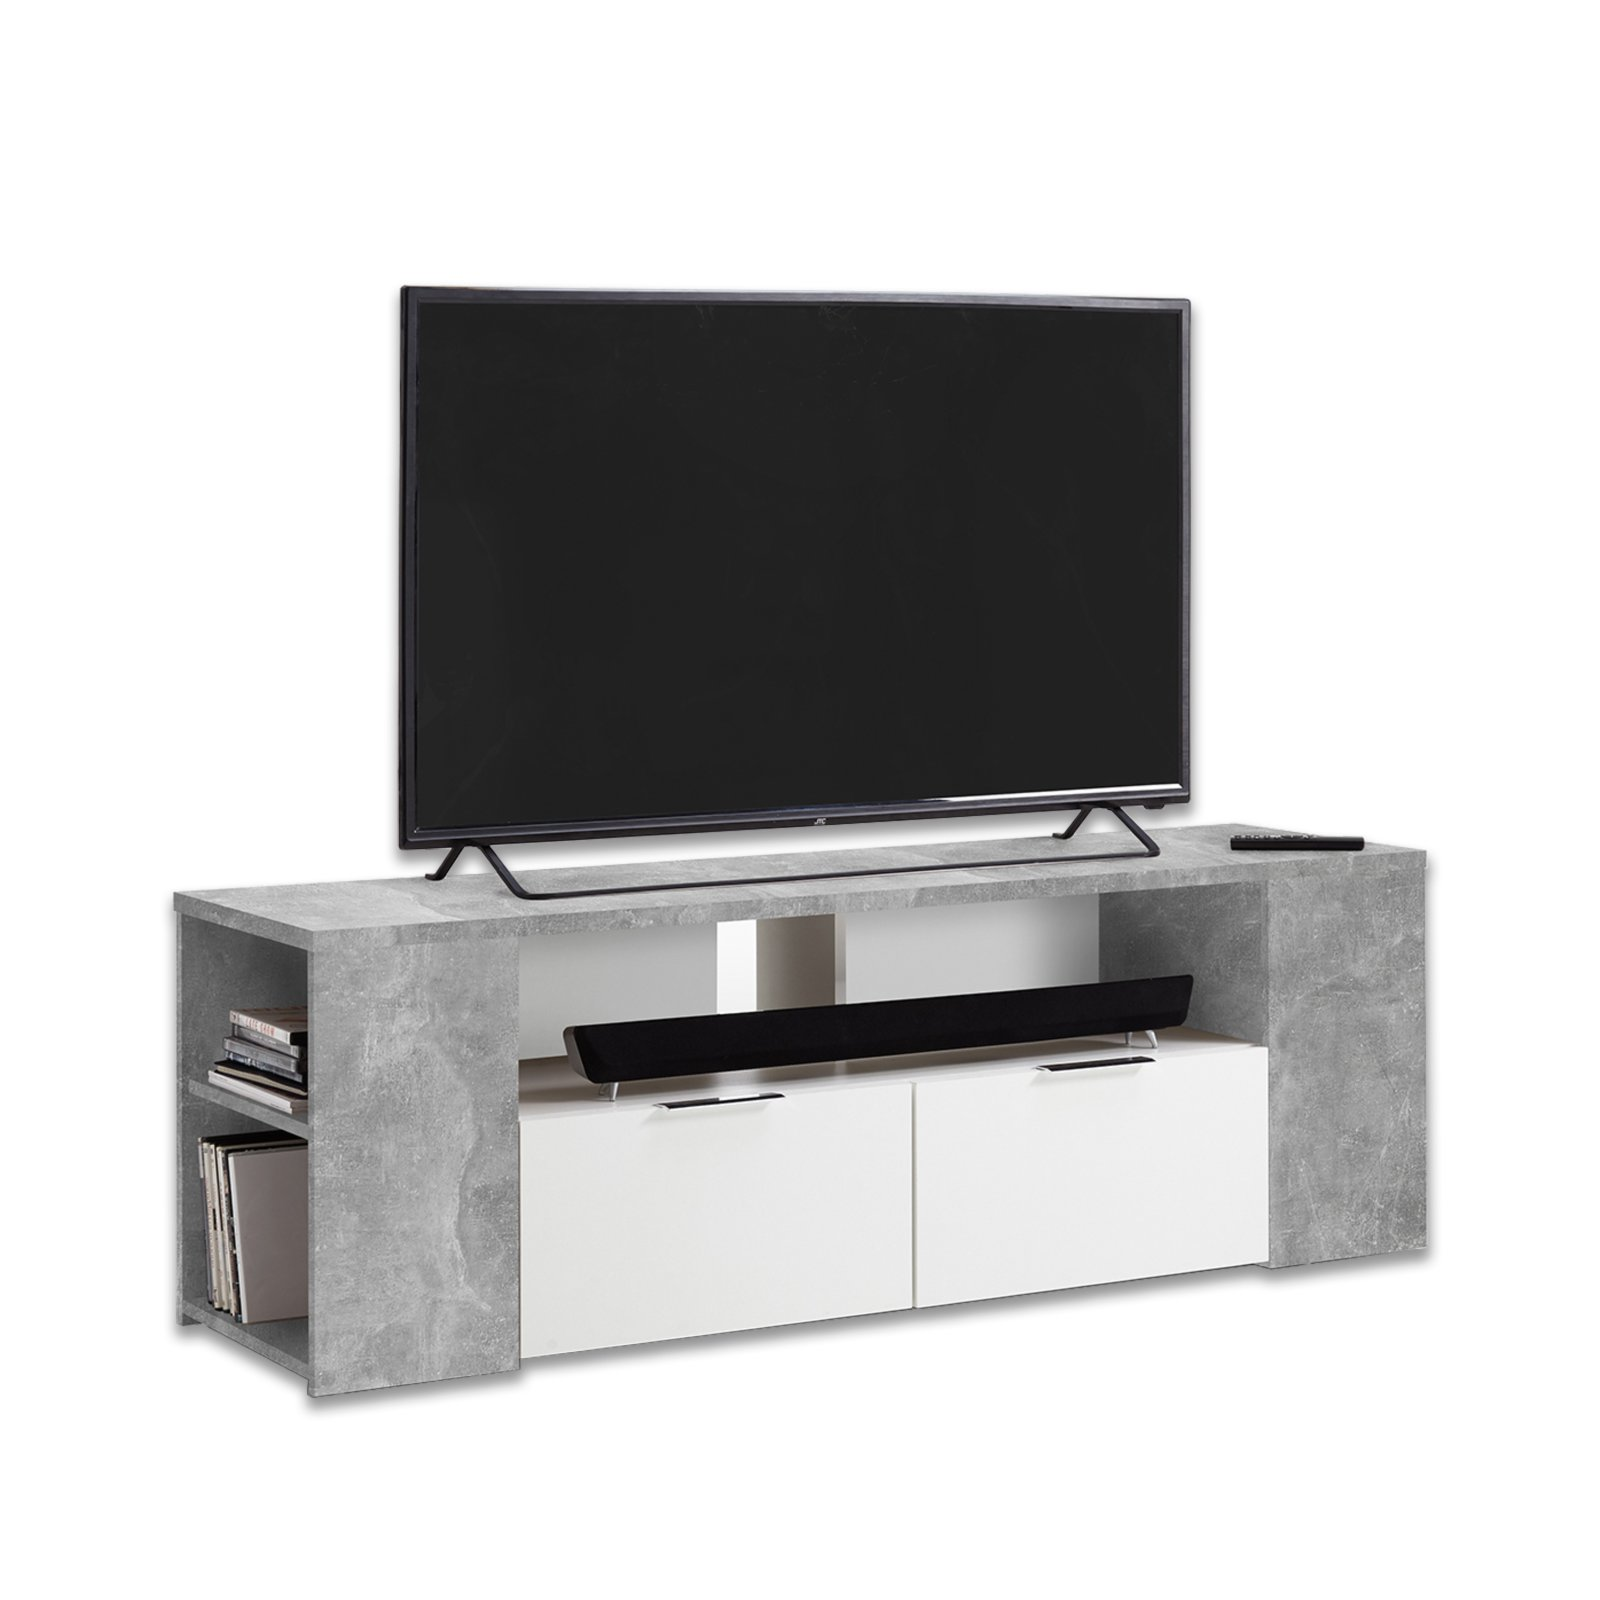 tv lowboard tabor beton wei 150 cm breit tv lowboards tv b nke tv hifi m bel m bel. Black Bedroom Furniture Sets. Home Design Ideas